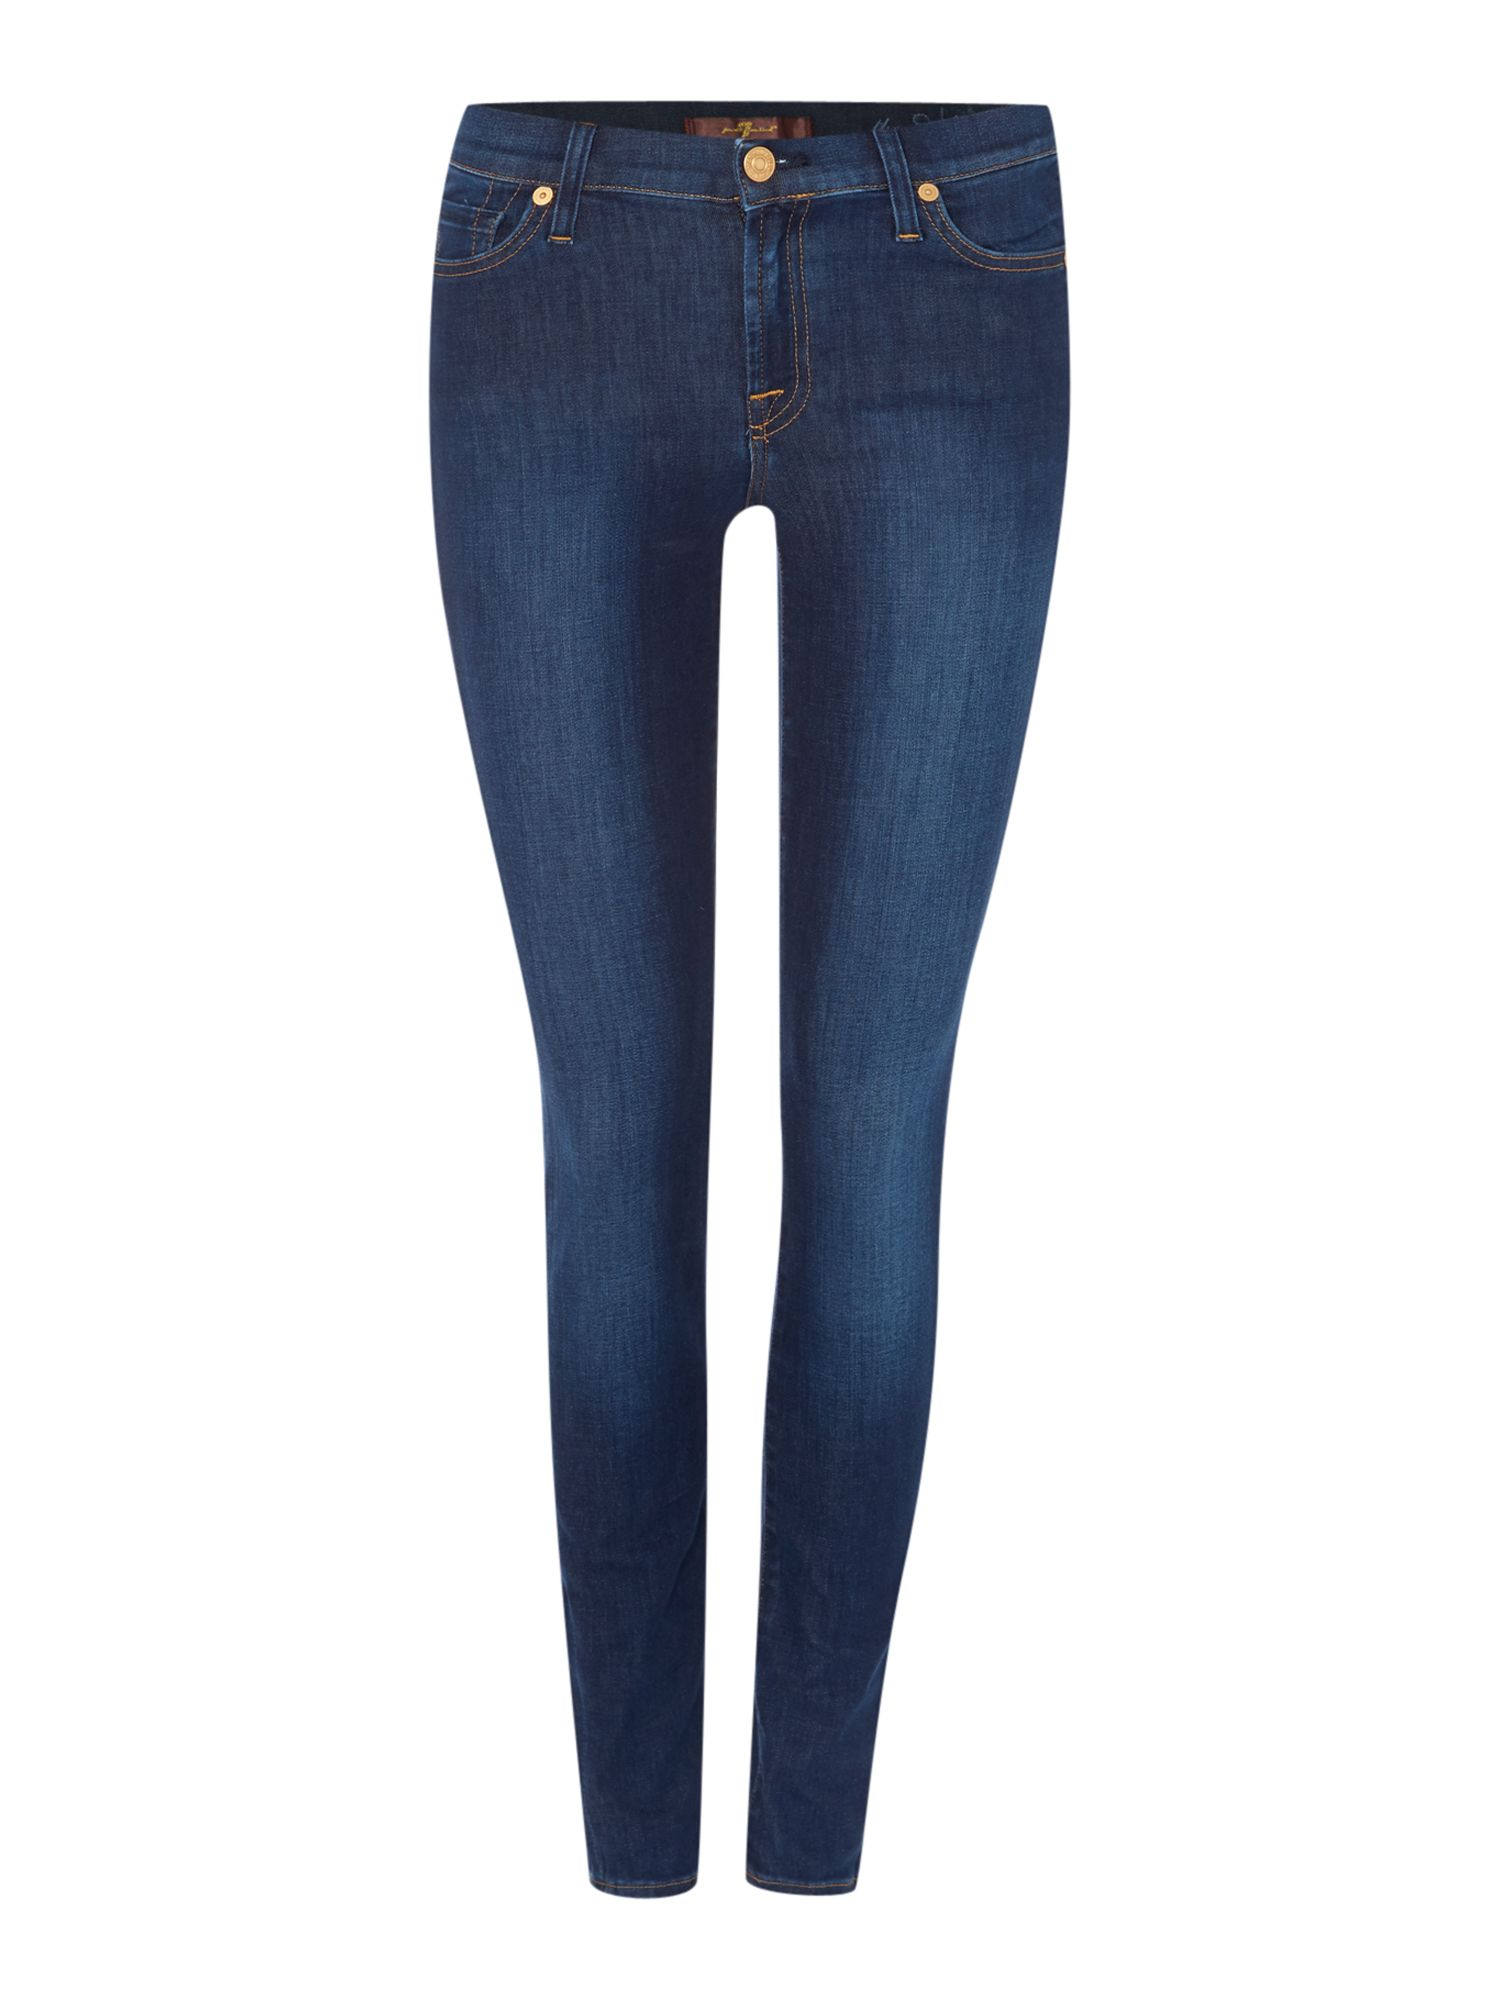 7 For All Mankind 7 For All Mankind The Skinny jeans in Boston Blue, Denim Dark Wash